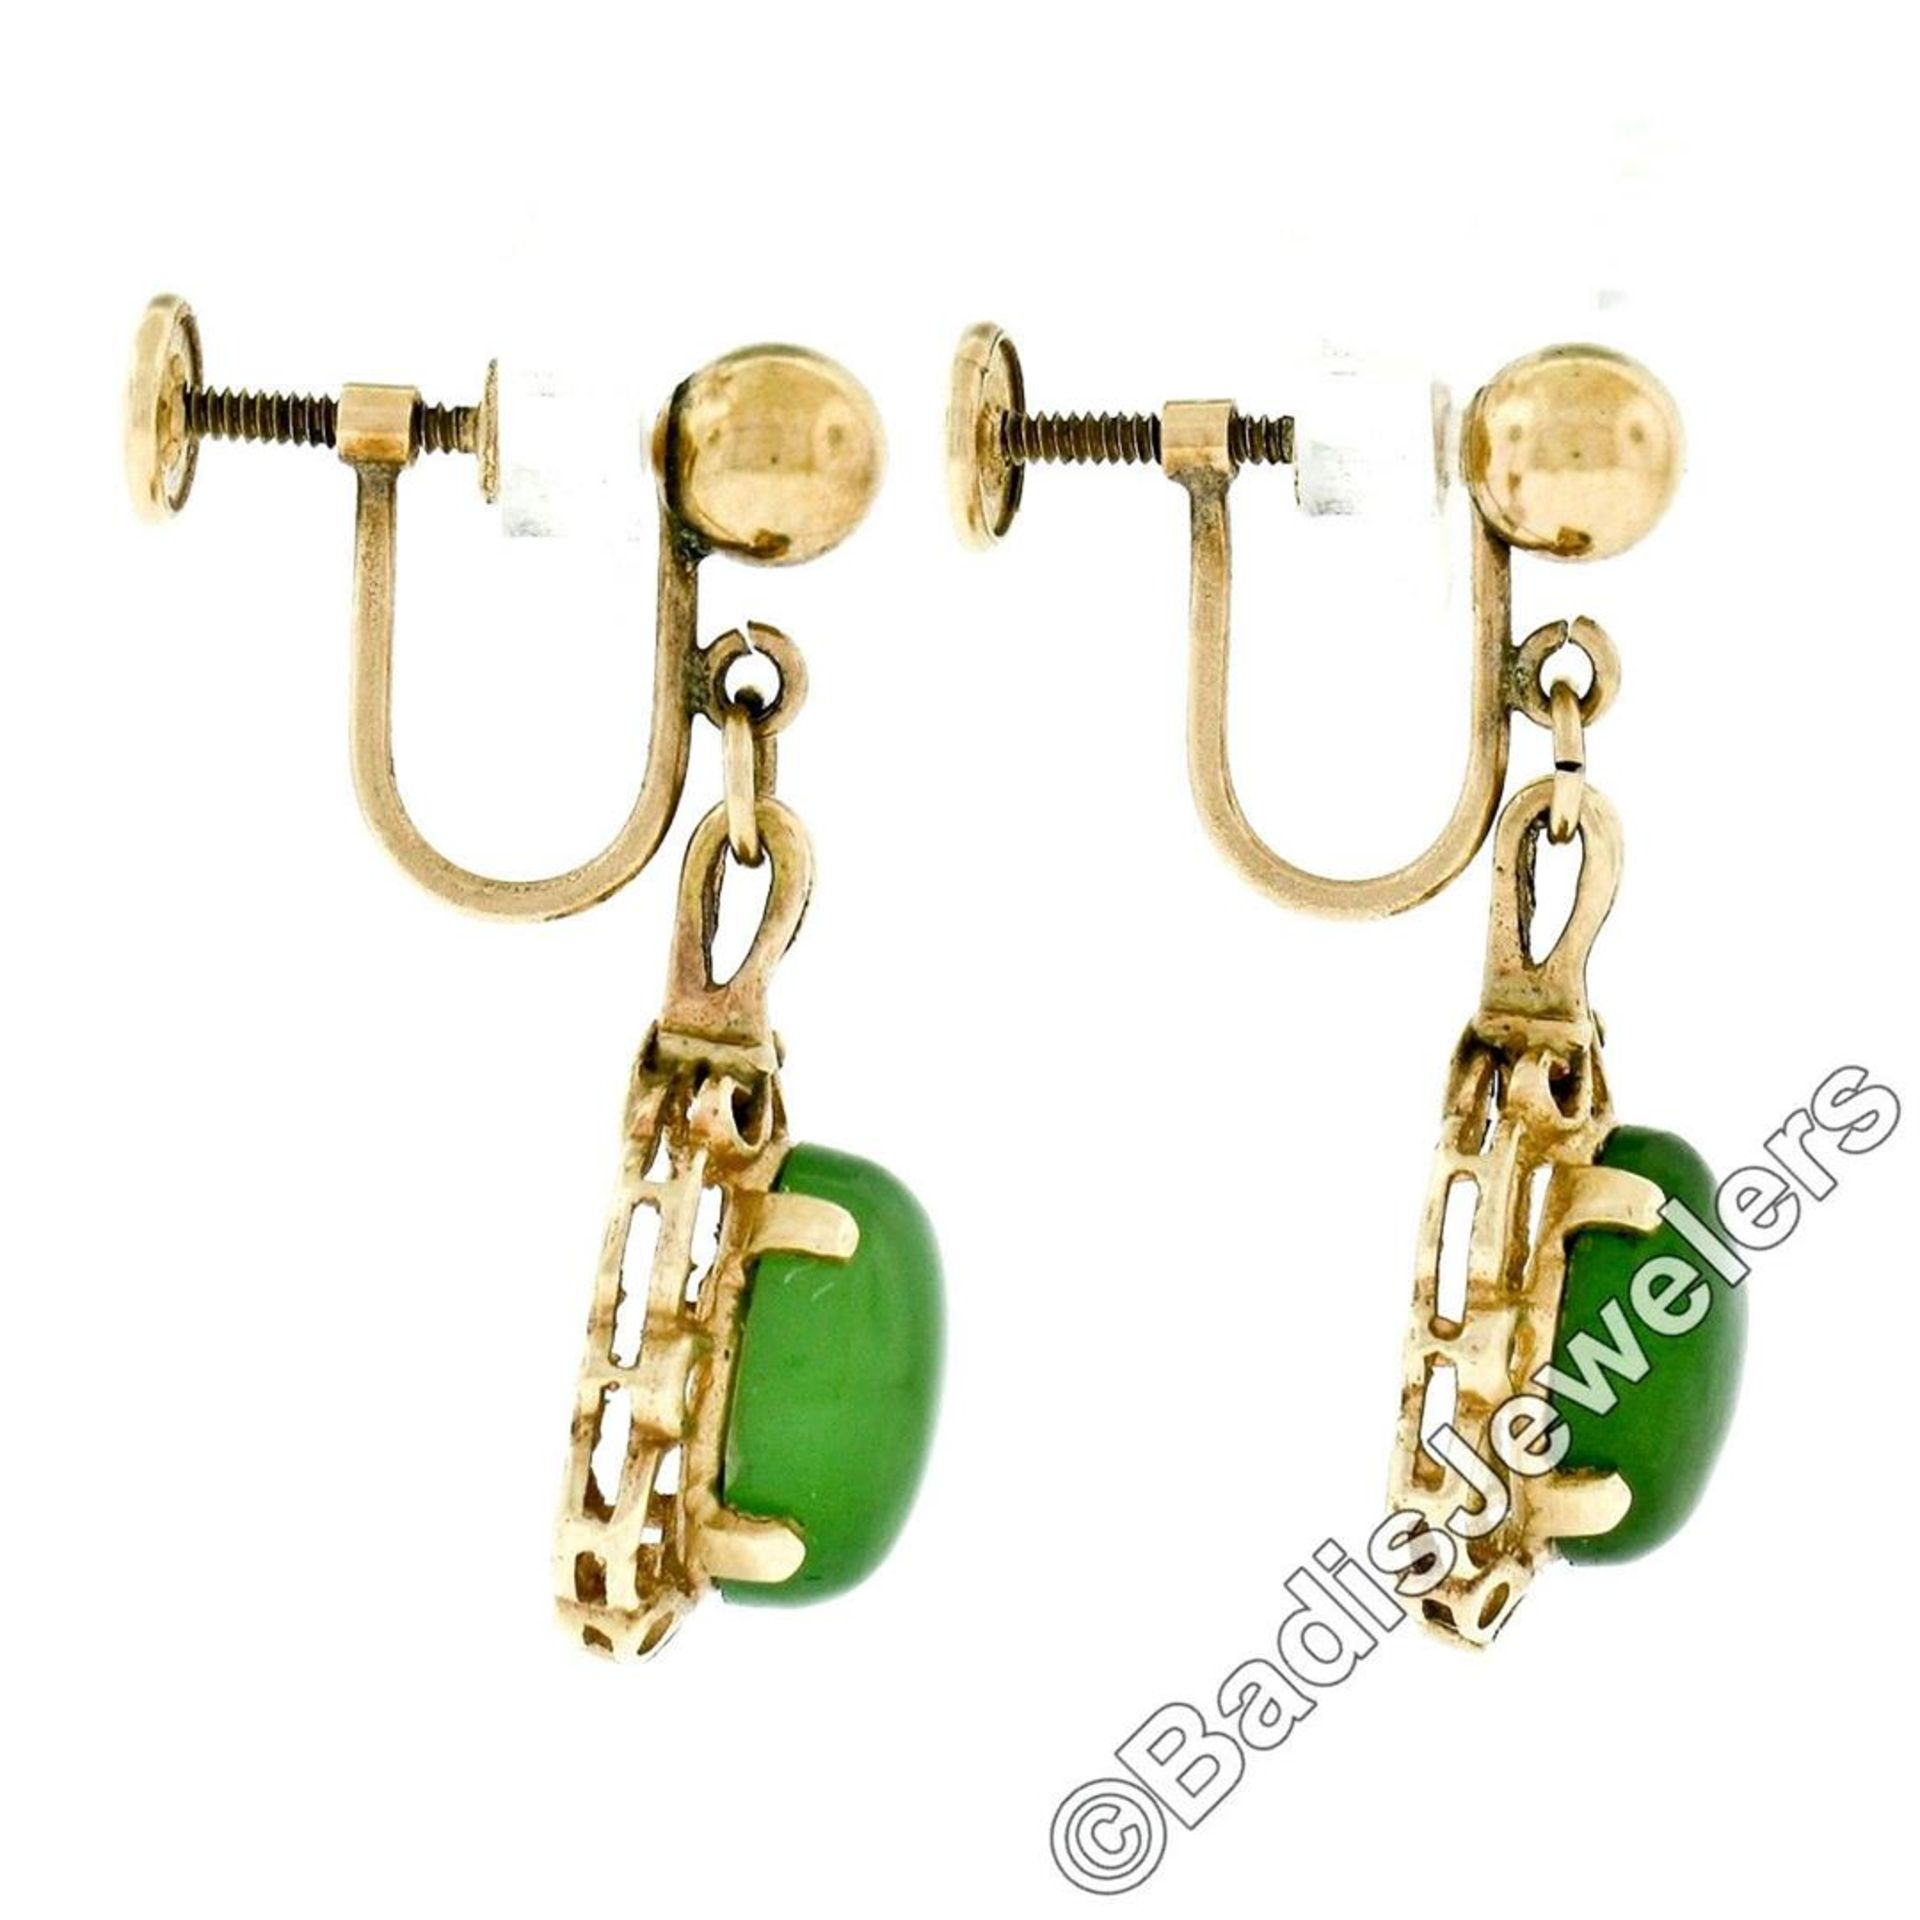 Vintage 14kt Yellow Gold Oval Green Jade Non Pierced Earrings - Image 4 of 6